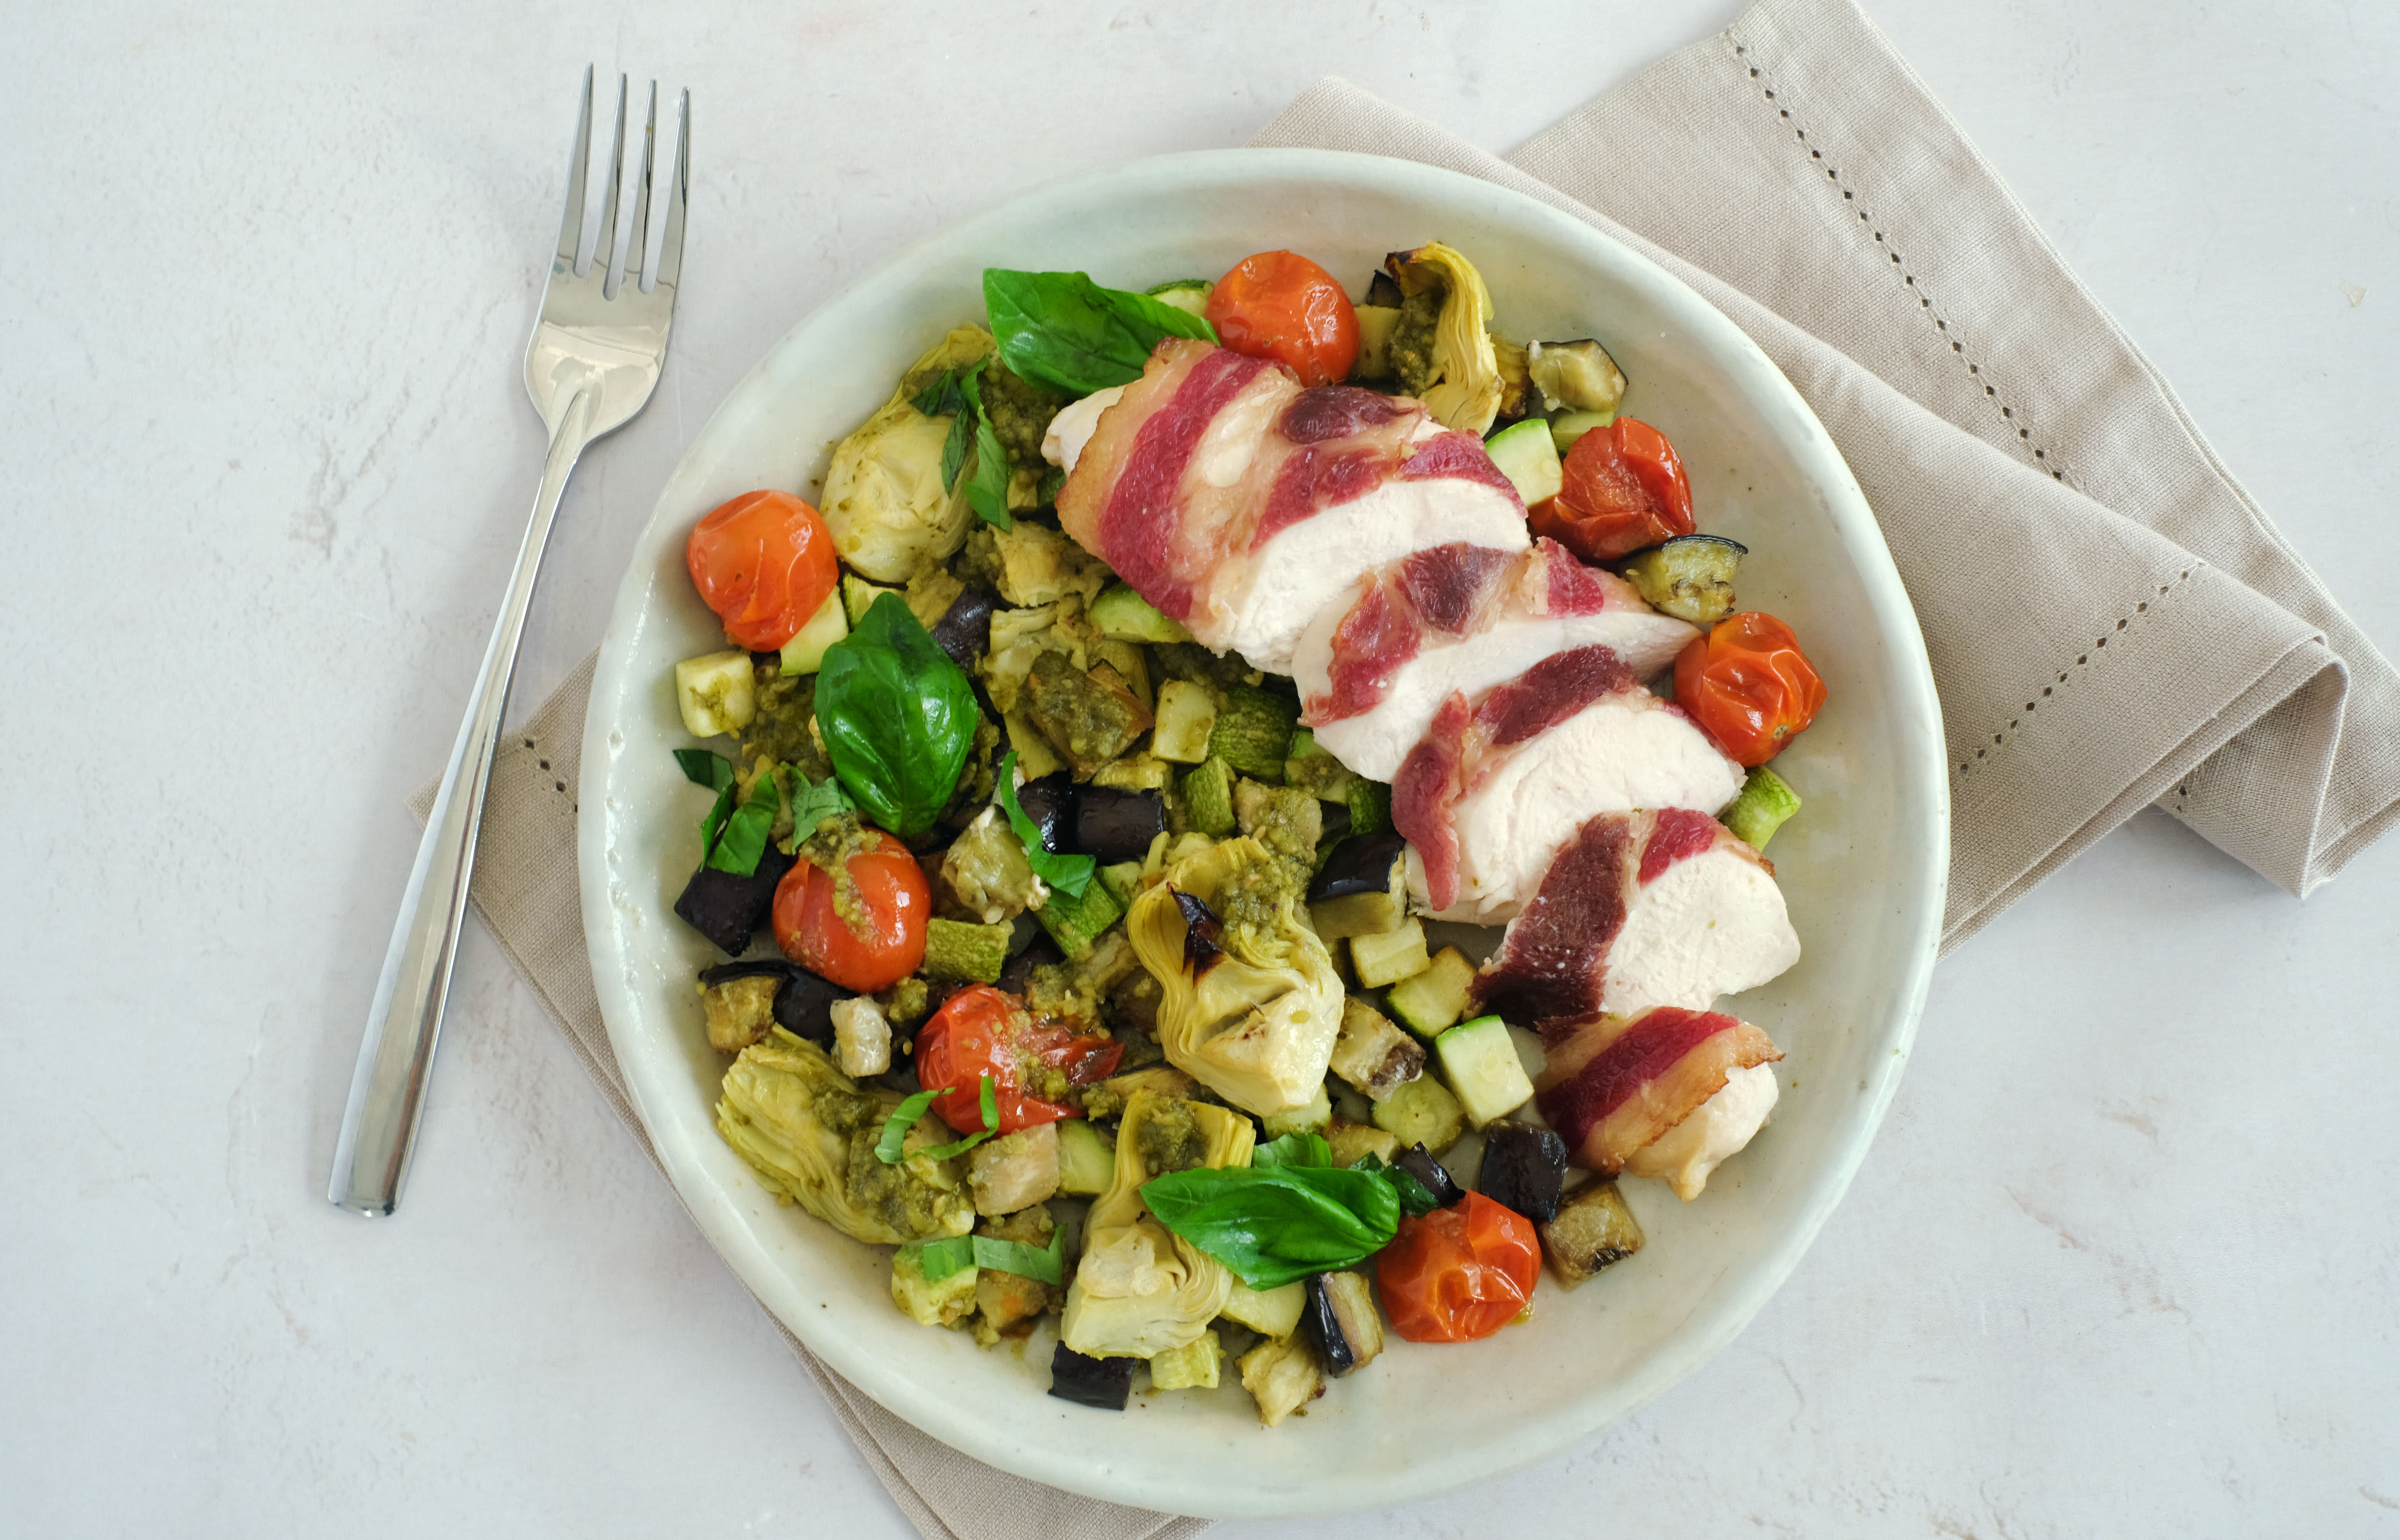 Bacon Wrapped Chicken with Warm Pesto Vegetables